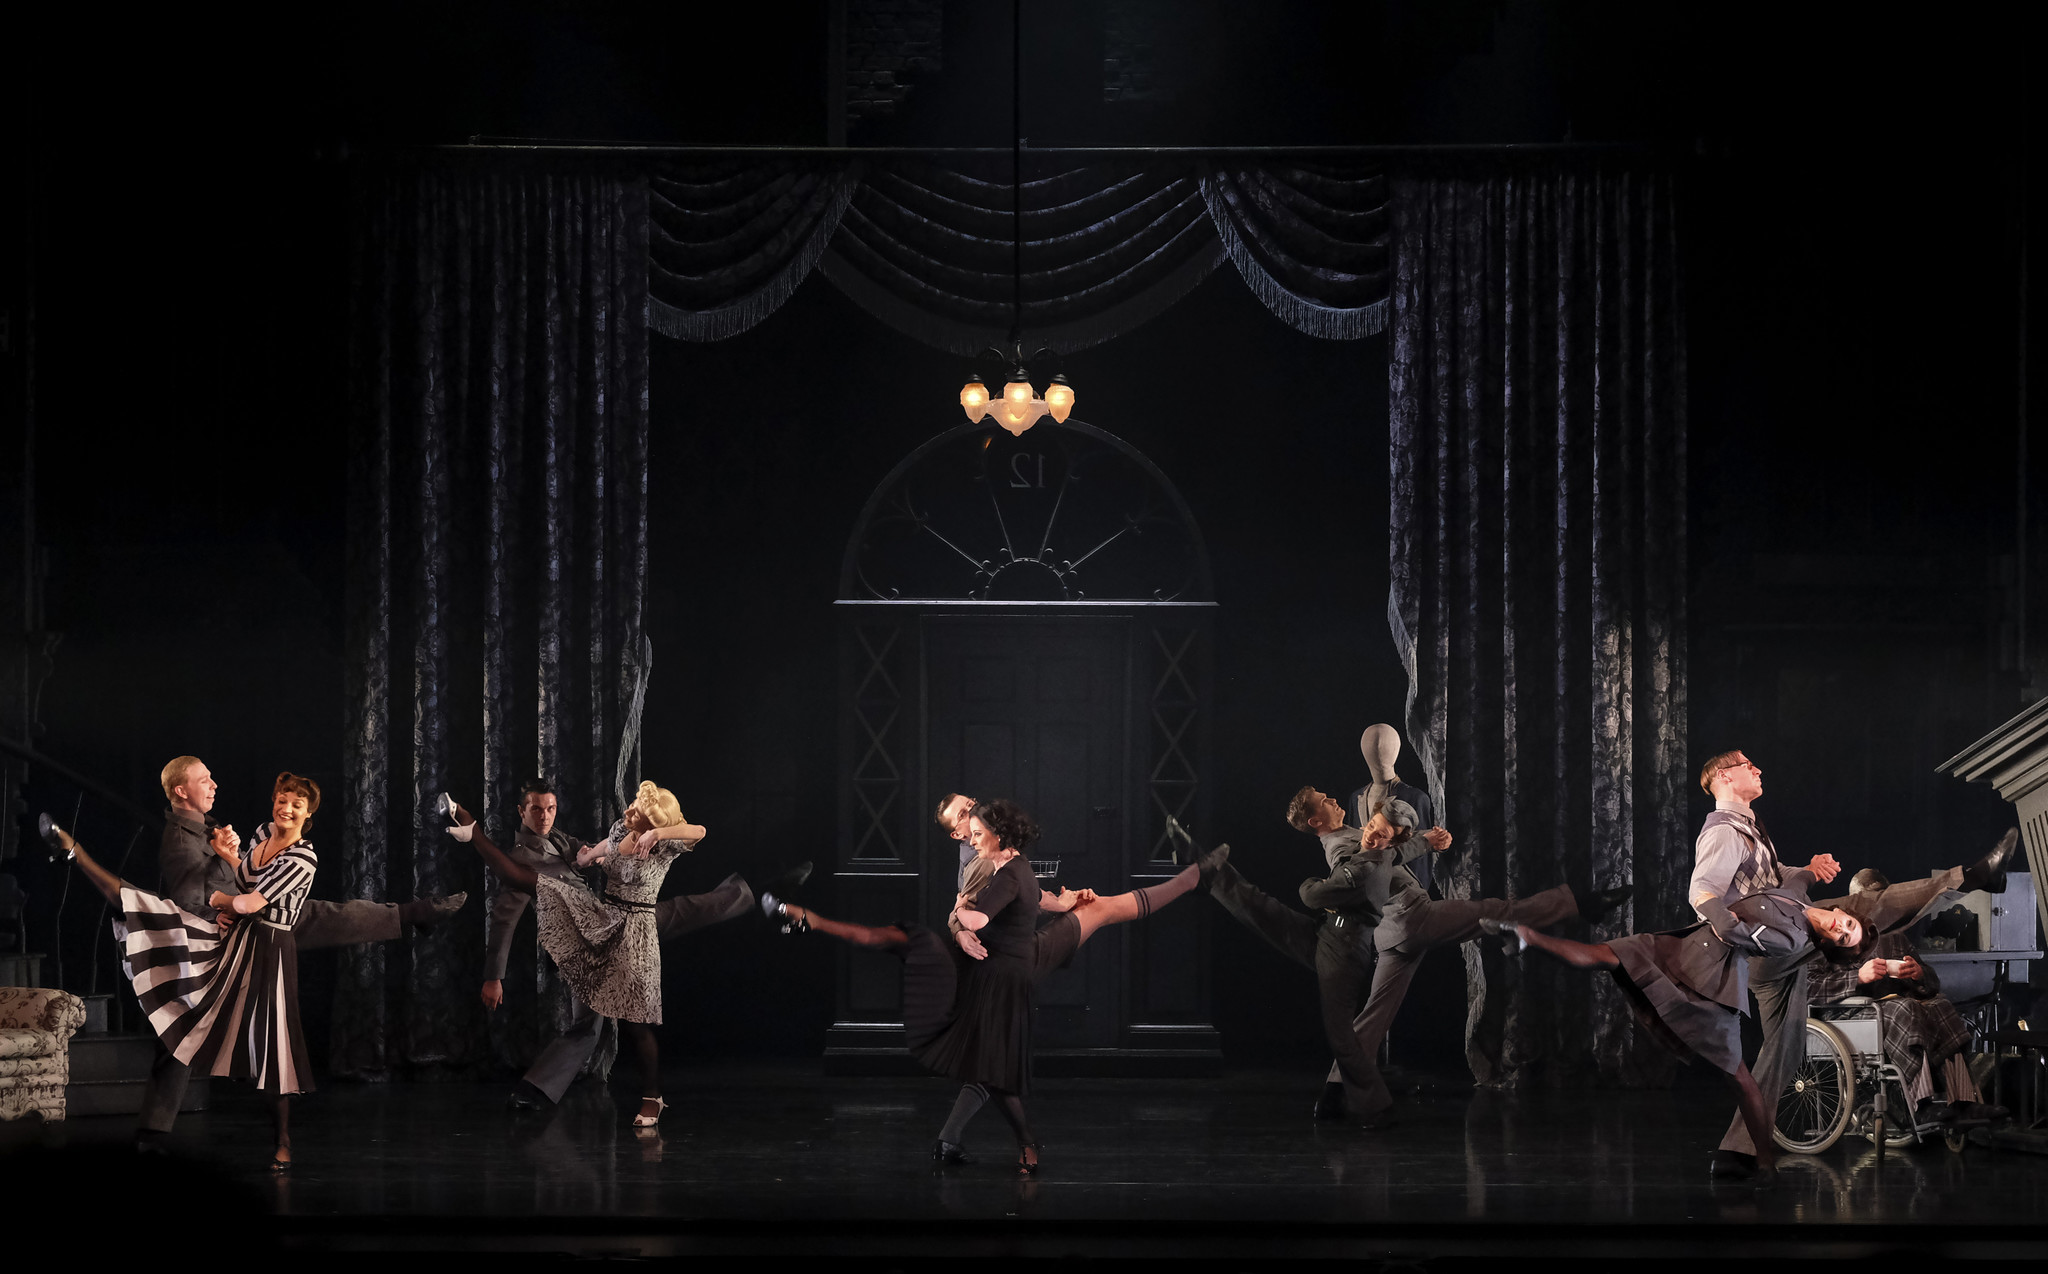 Los Angeles, CA FEBRAURY 6, 2019: Choreographer Matthew Bourne brings his company, New Adventures